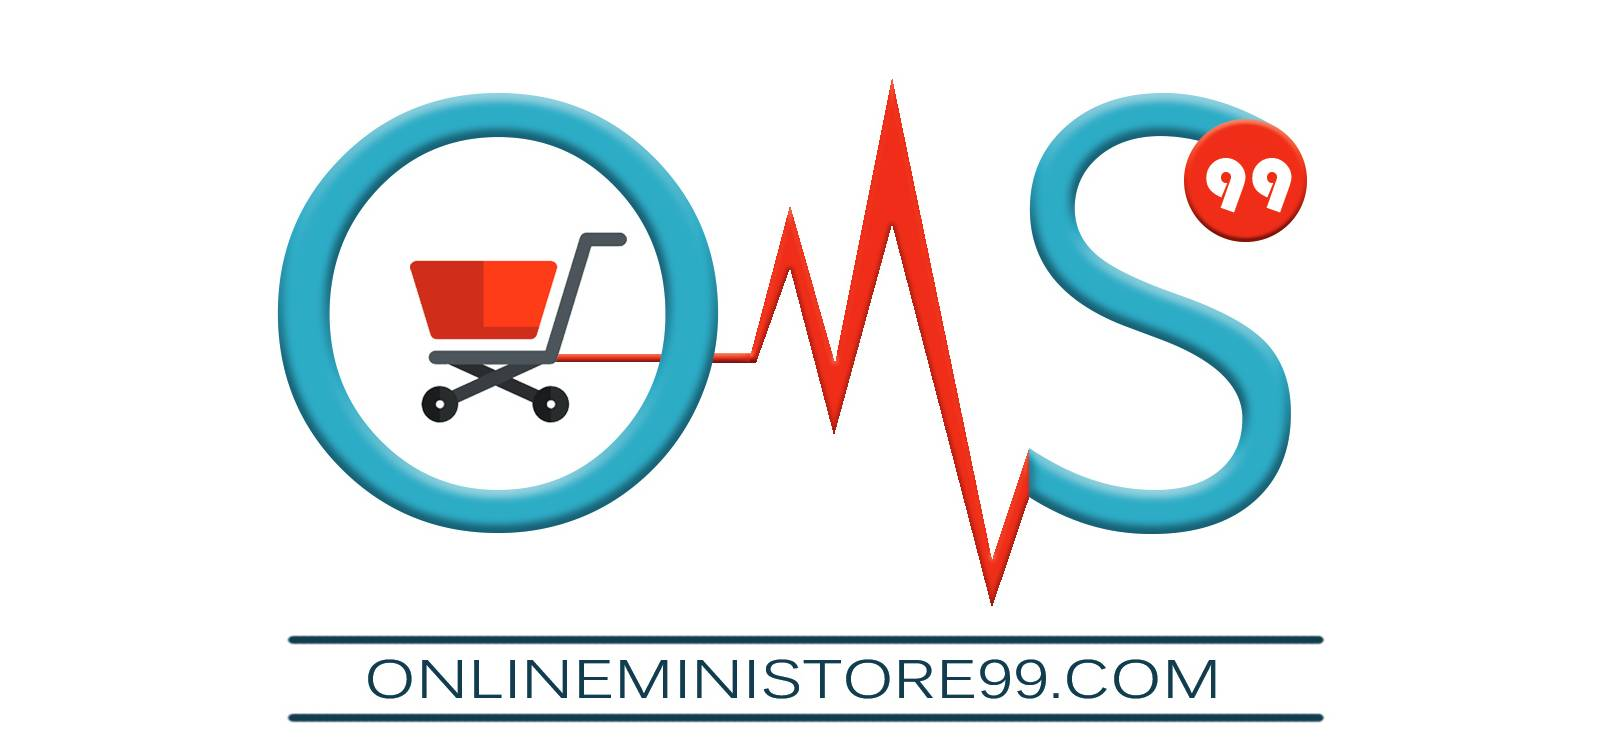 OMS99 : Online Mini Store Delhi India